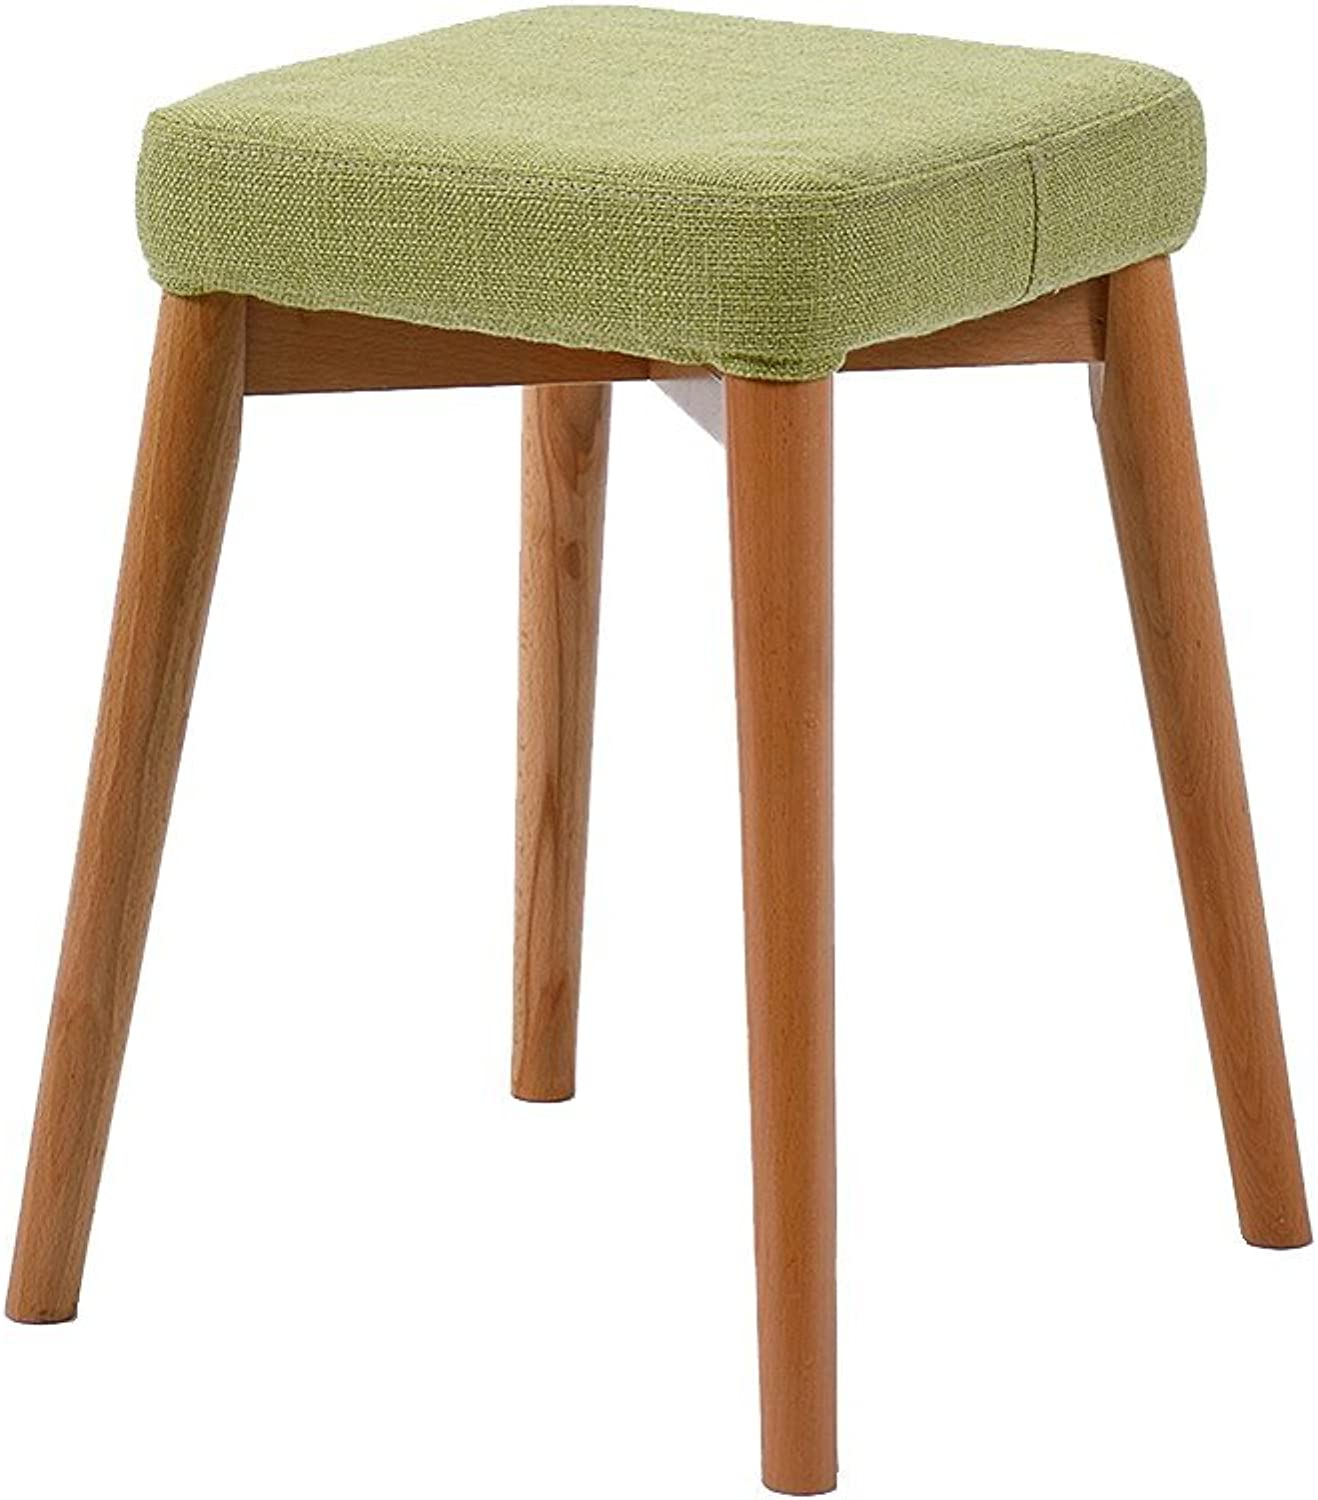 20-Moozhitech Solid Wood Stool Home Bench Dressing Stool Fashion Creative Square Stool Dining Stool Fabric Stool Stool - Small Stool (color   A)